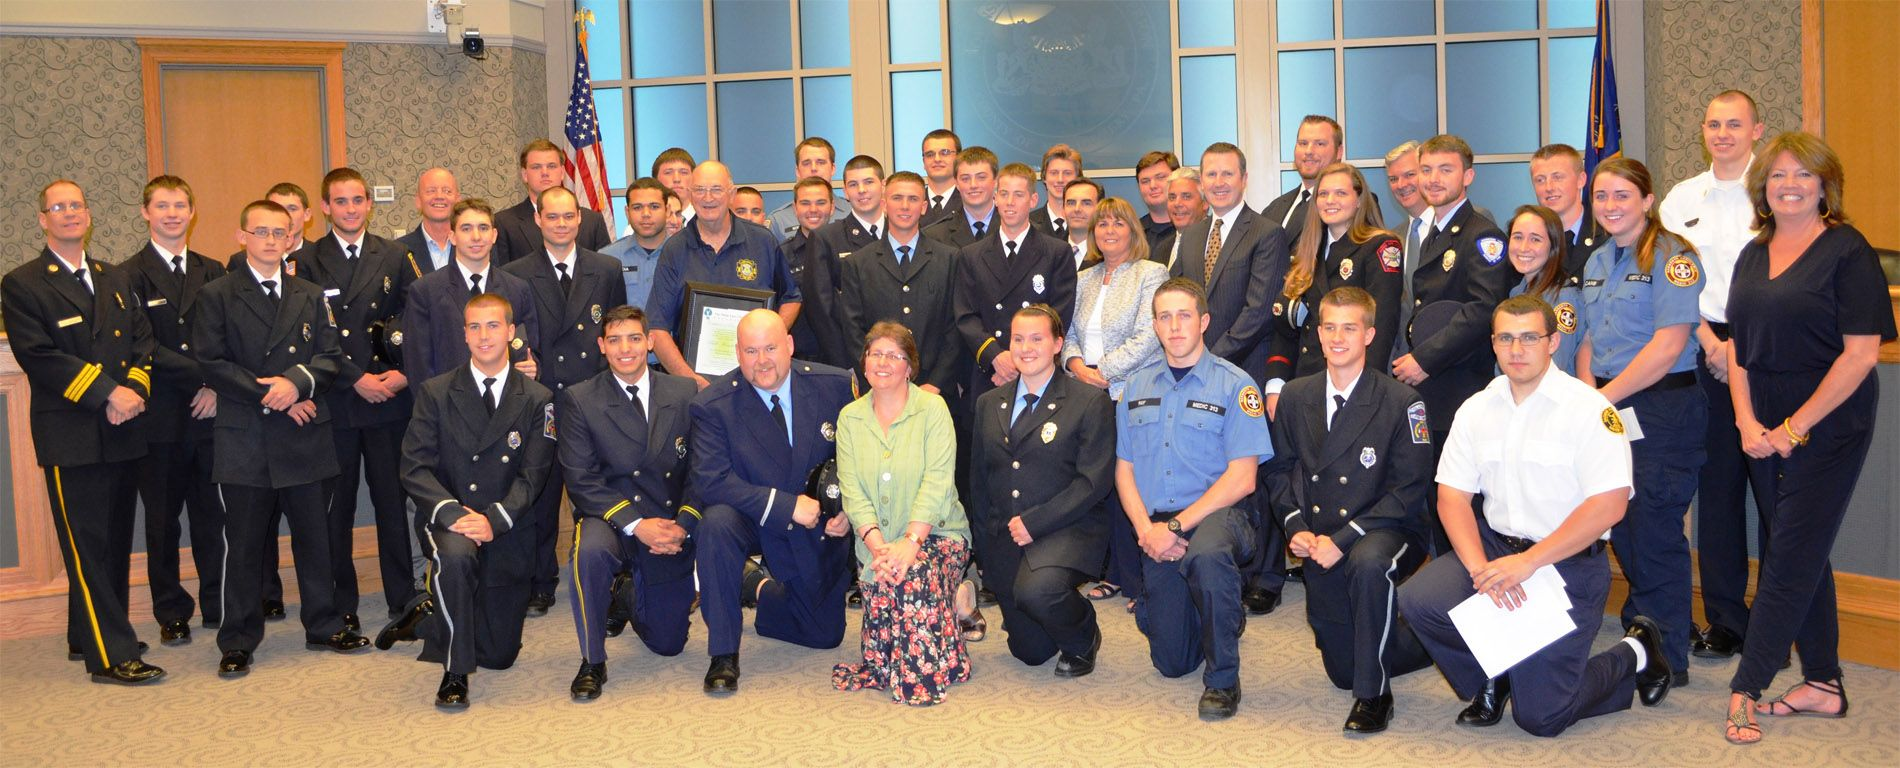 A Celebration of Hometown Heroes